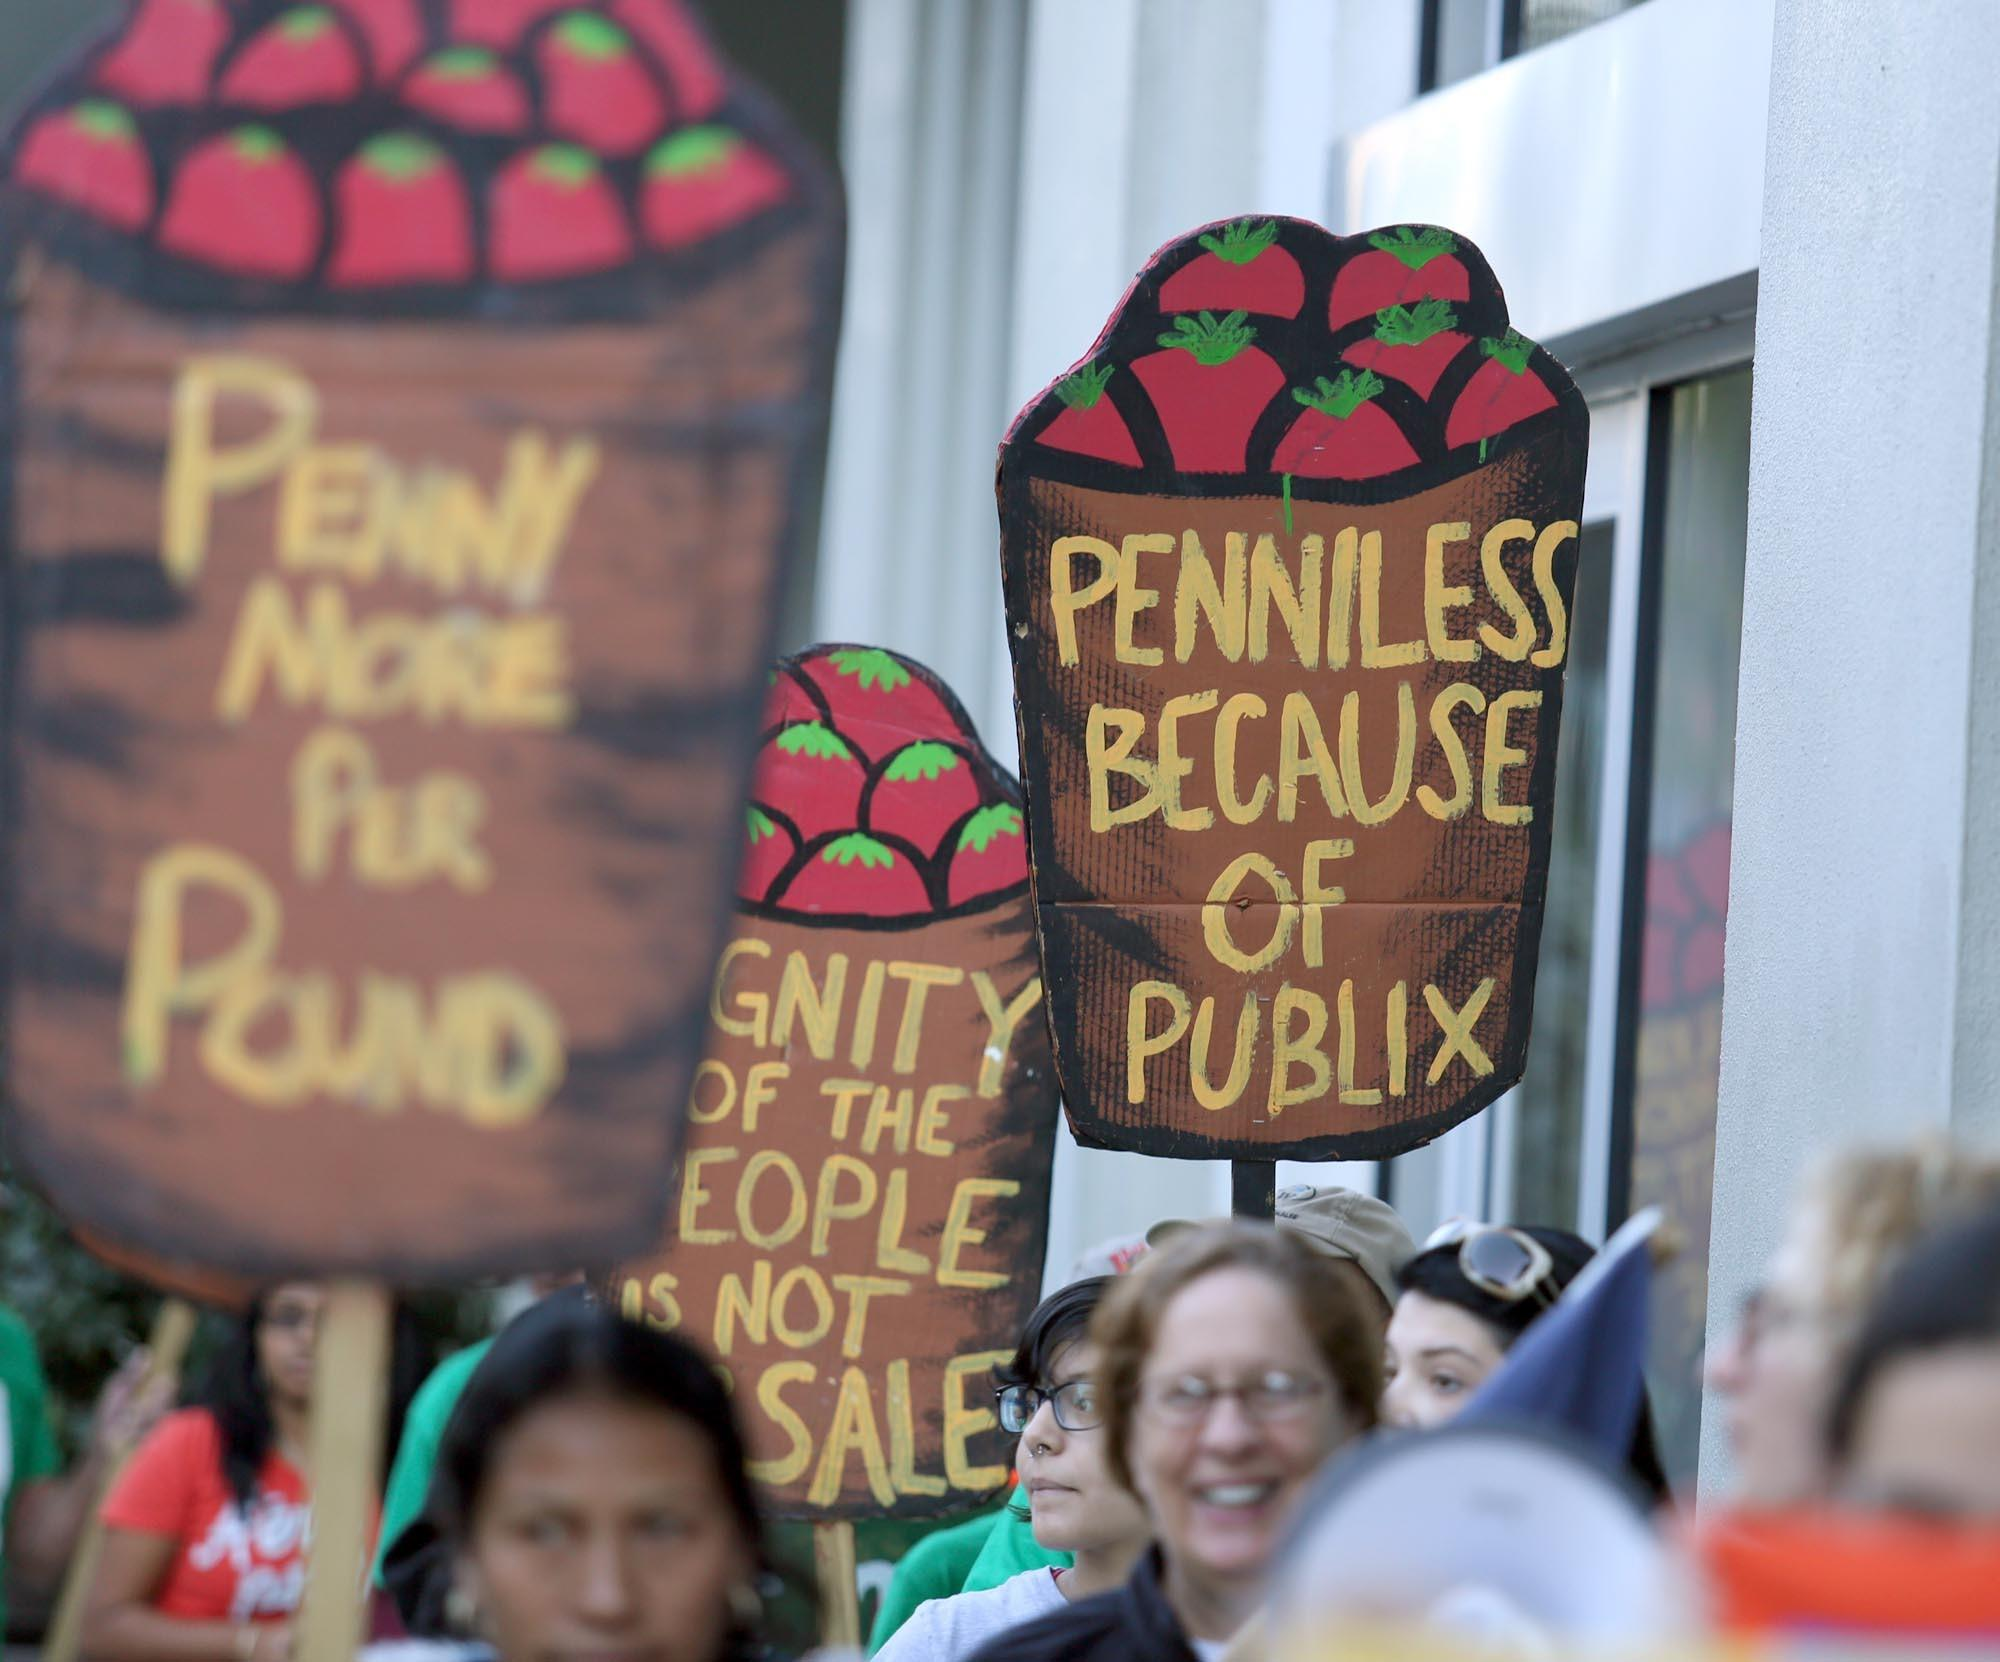 Protesters carry signs during a protest outside the Publix supermarket on Saturday, February 2, 2013. The protest was staged by farmworkers activists in an attempt to raise wages for tomato pickers.